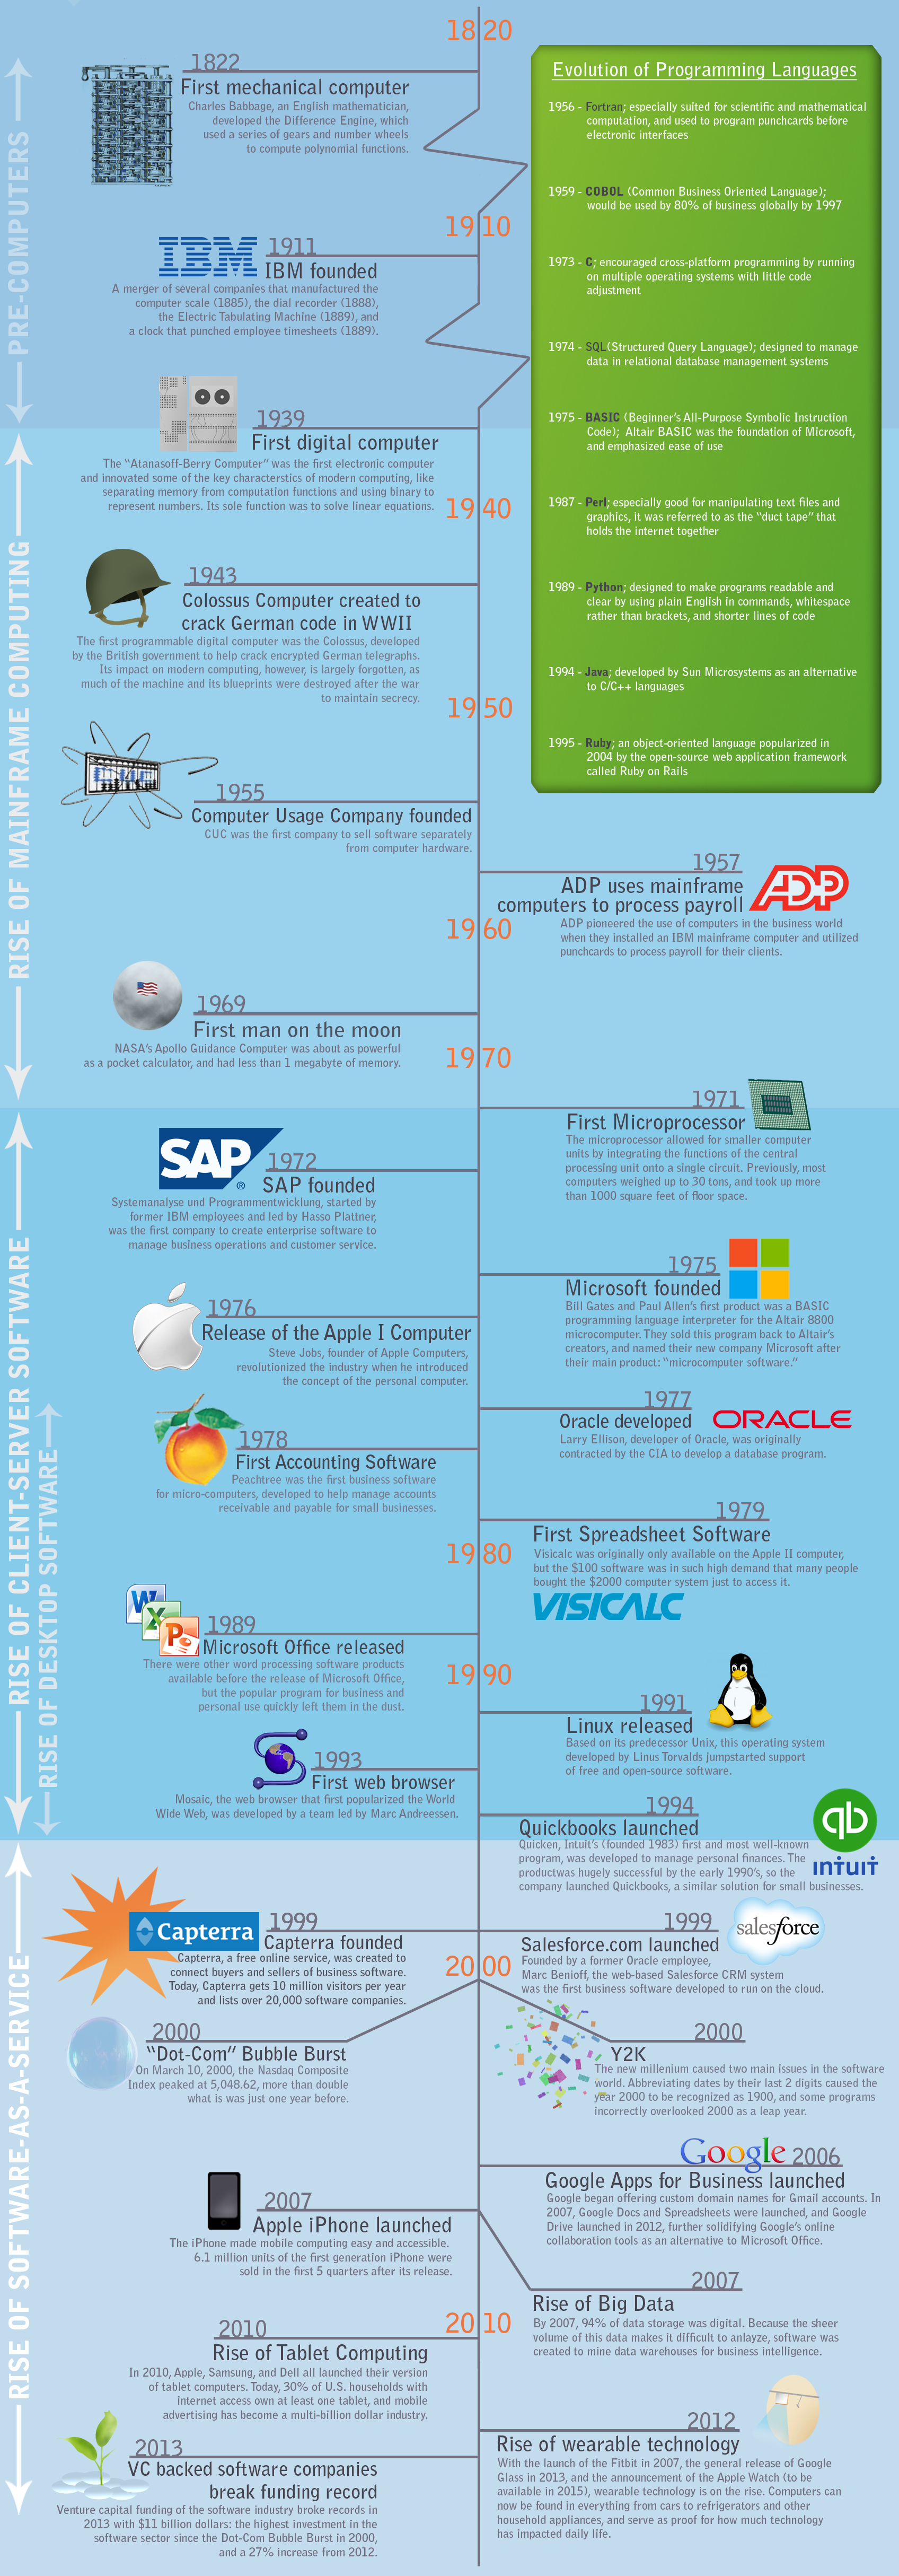 history-of-software-2